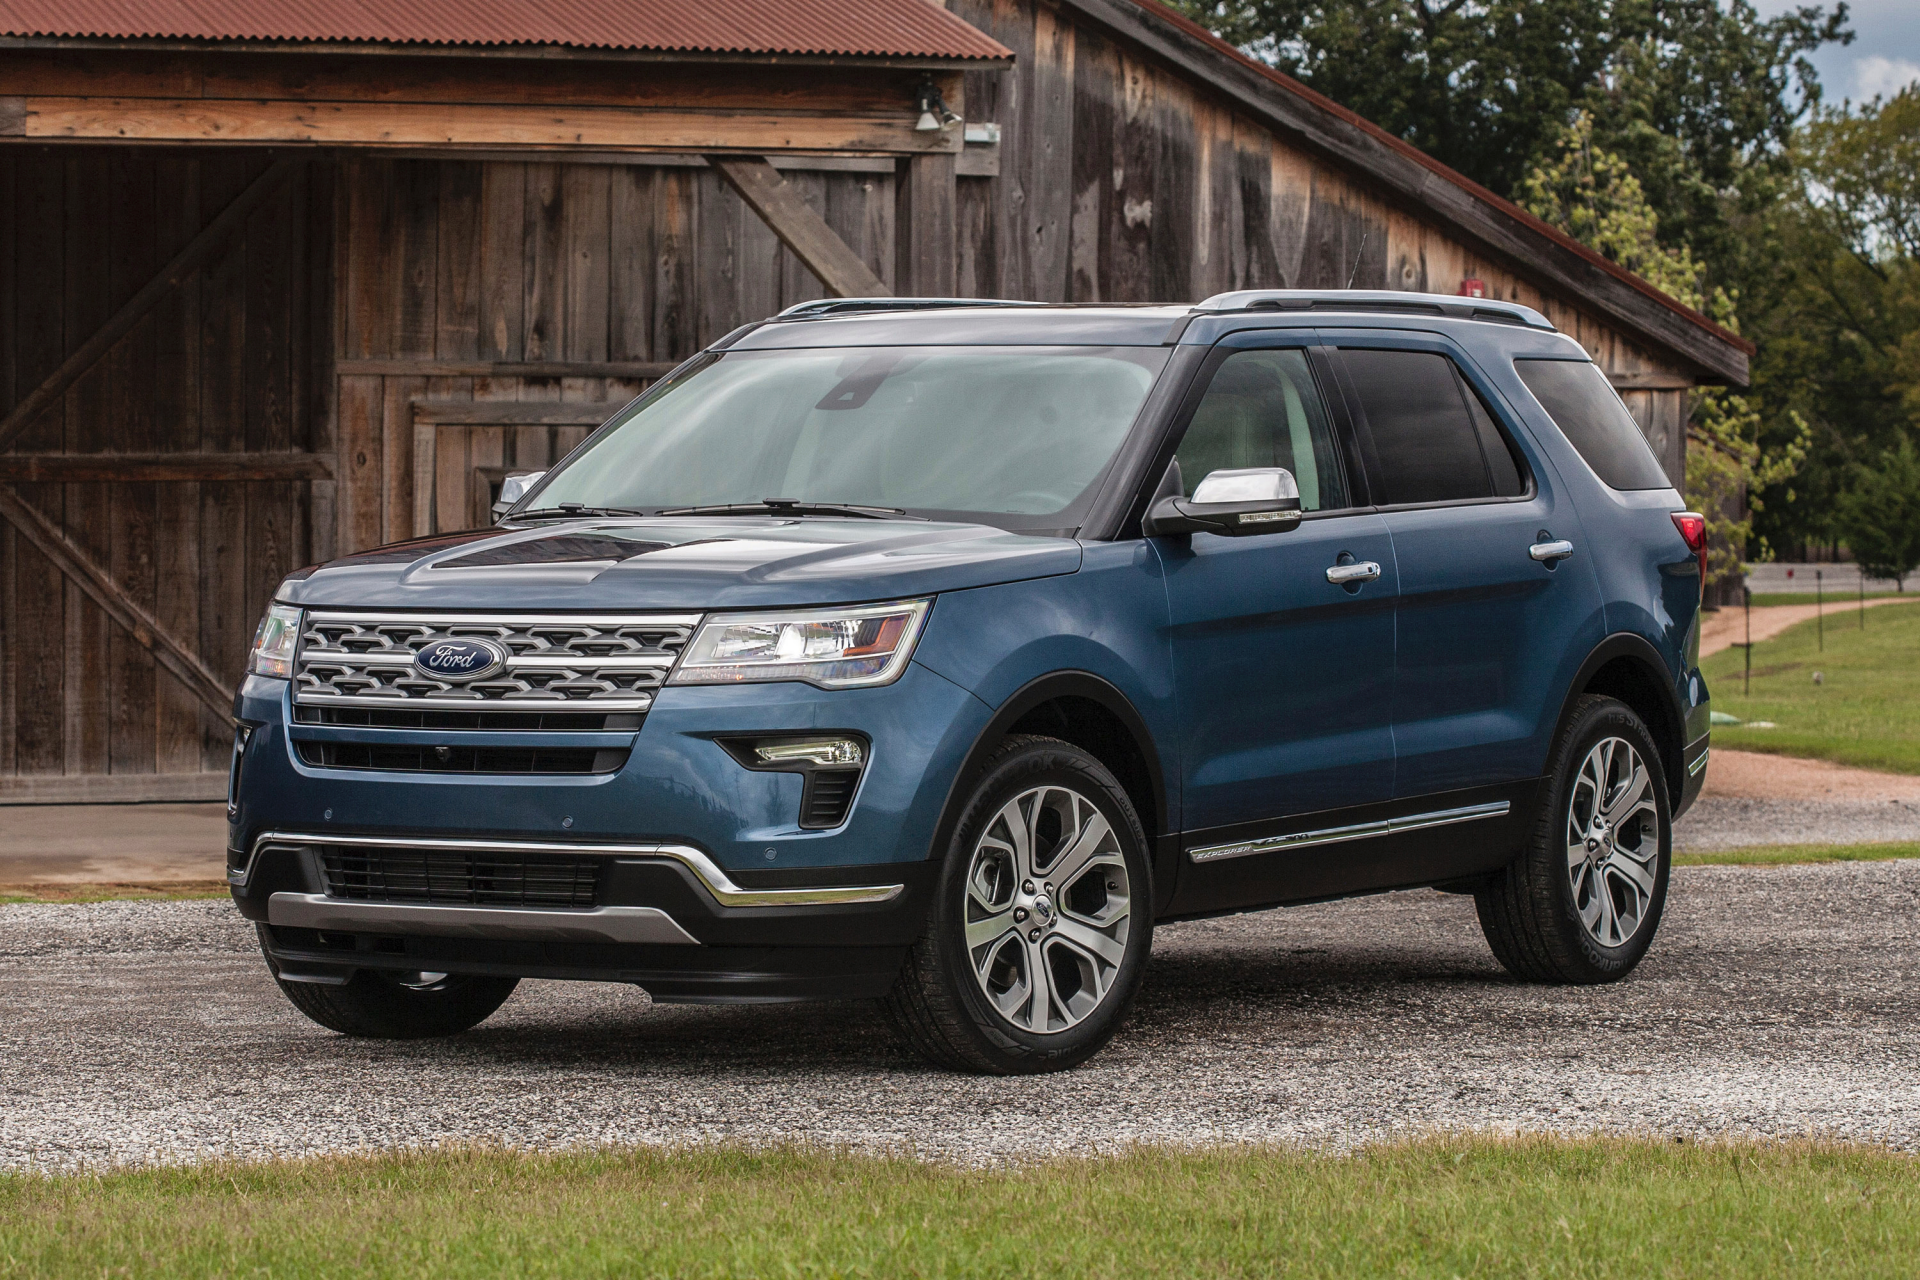 Business News With Images Ford Explorer 2019 Ford Explorer Suv